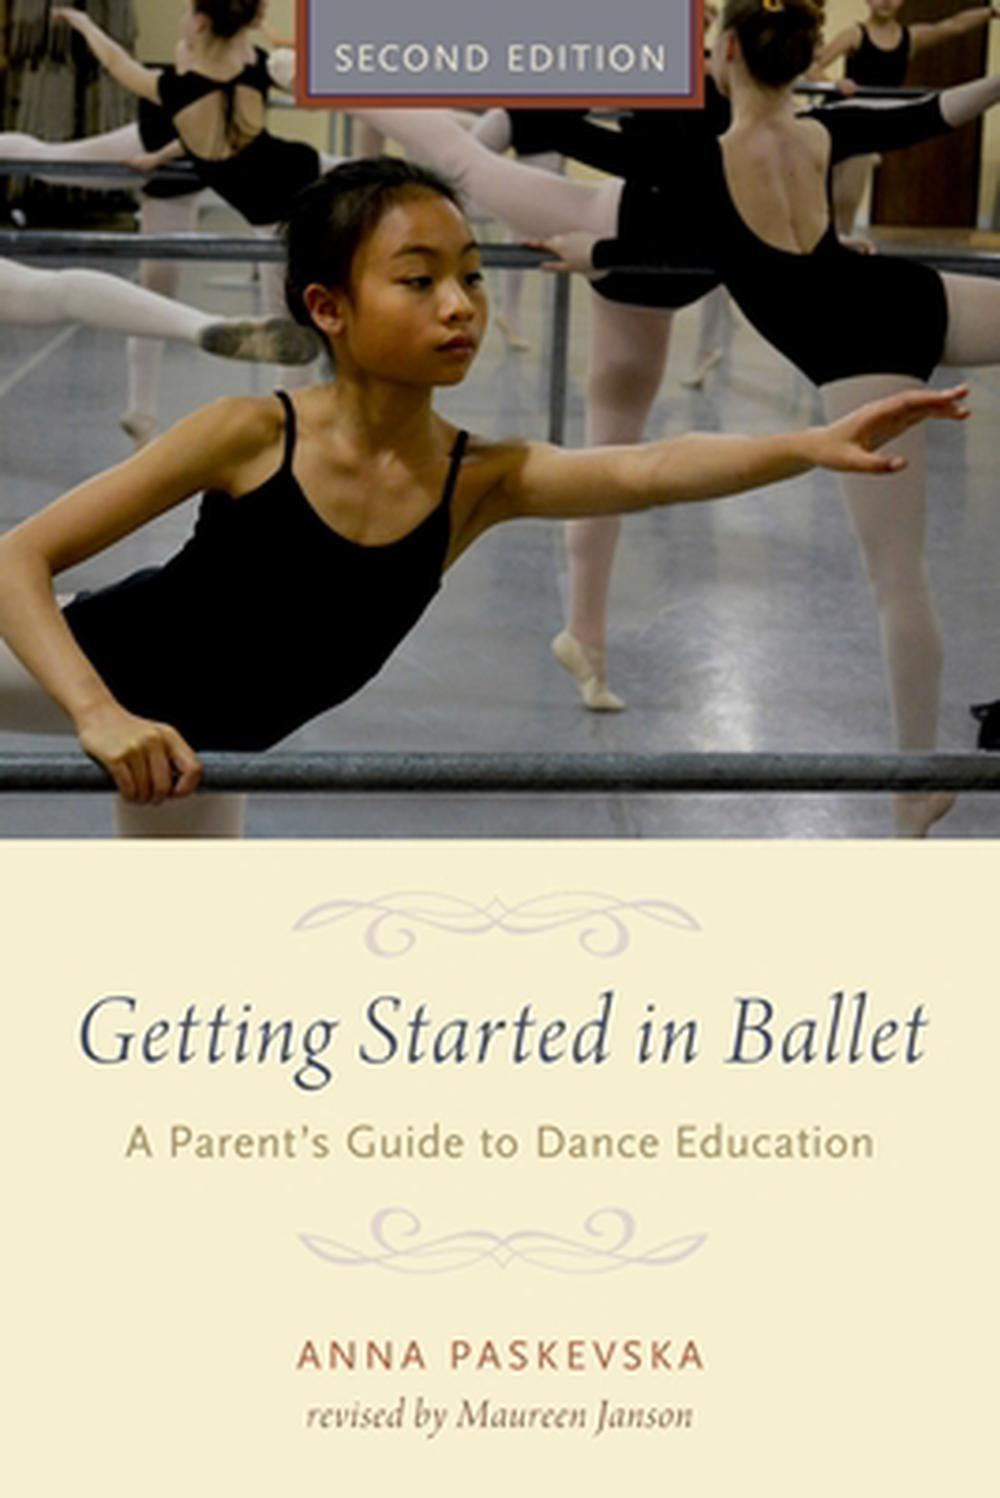 Getting Started in Ballet